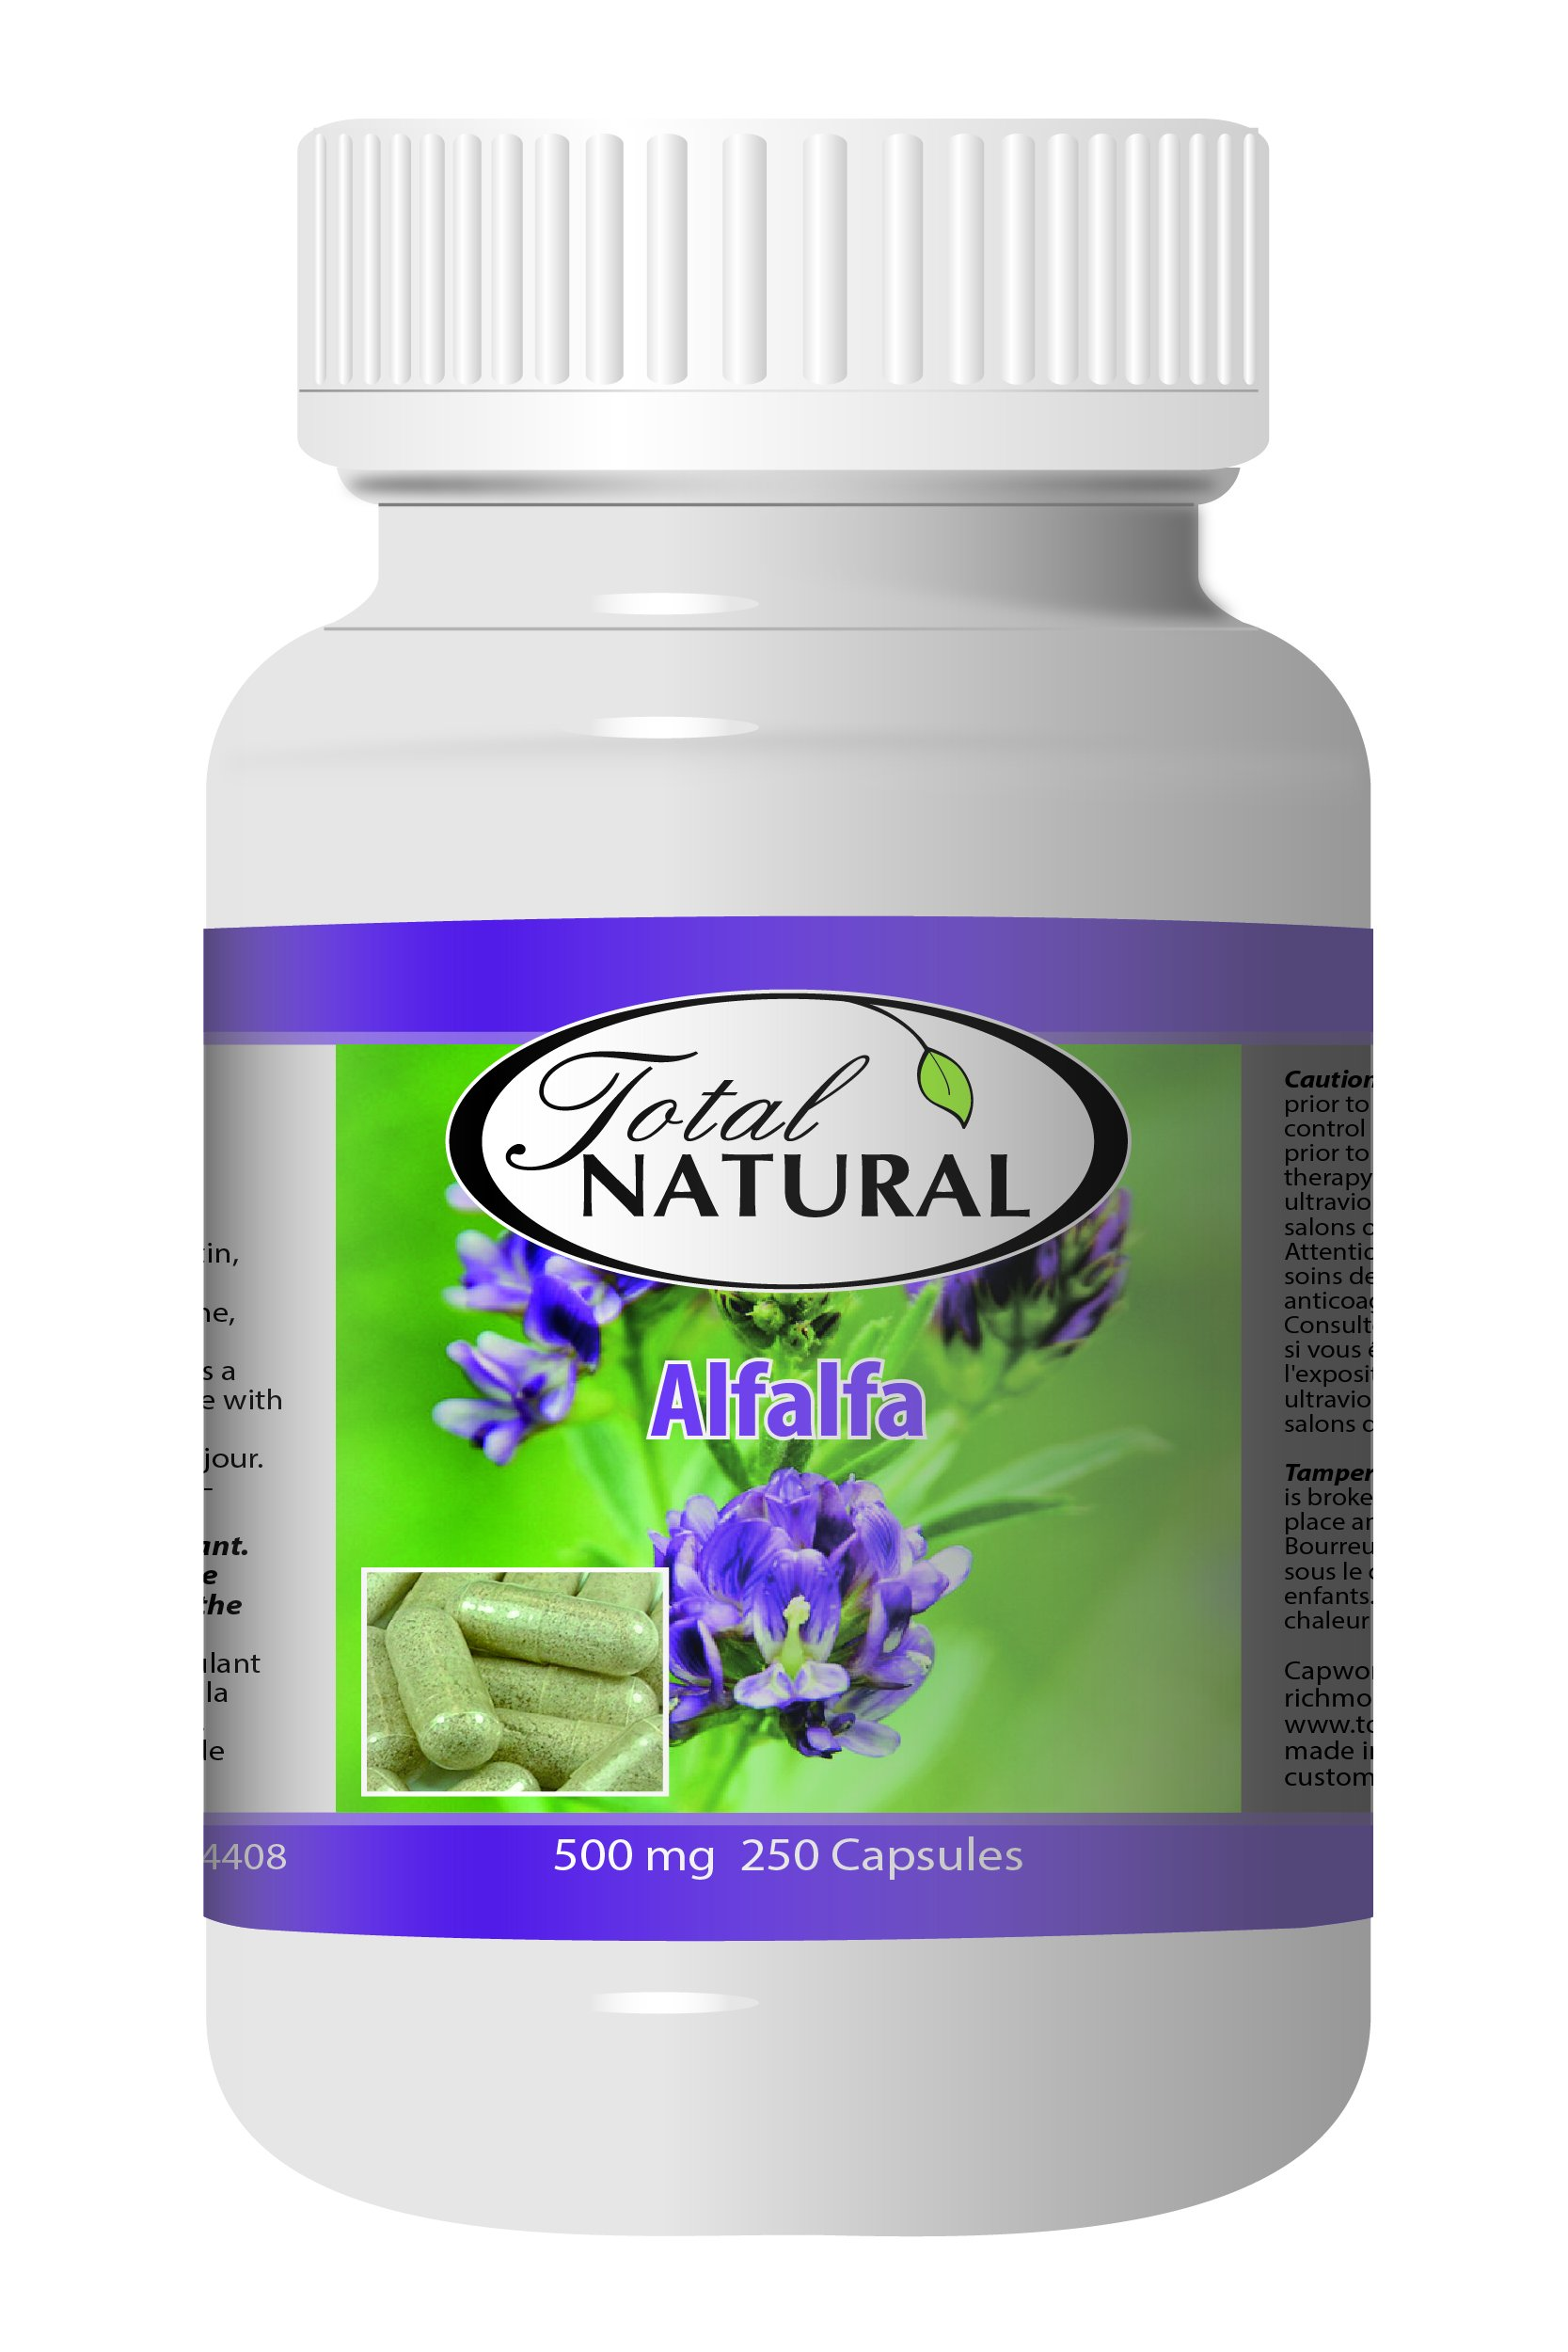 Alfalfa Organic Supplement 500mg 250 Capsules [2 Bottles] by Total Natural, Premium Wild Harvest Alfalfa Tablets for Regulating Cholesterol, Acid-Base Balance